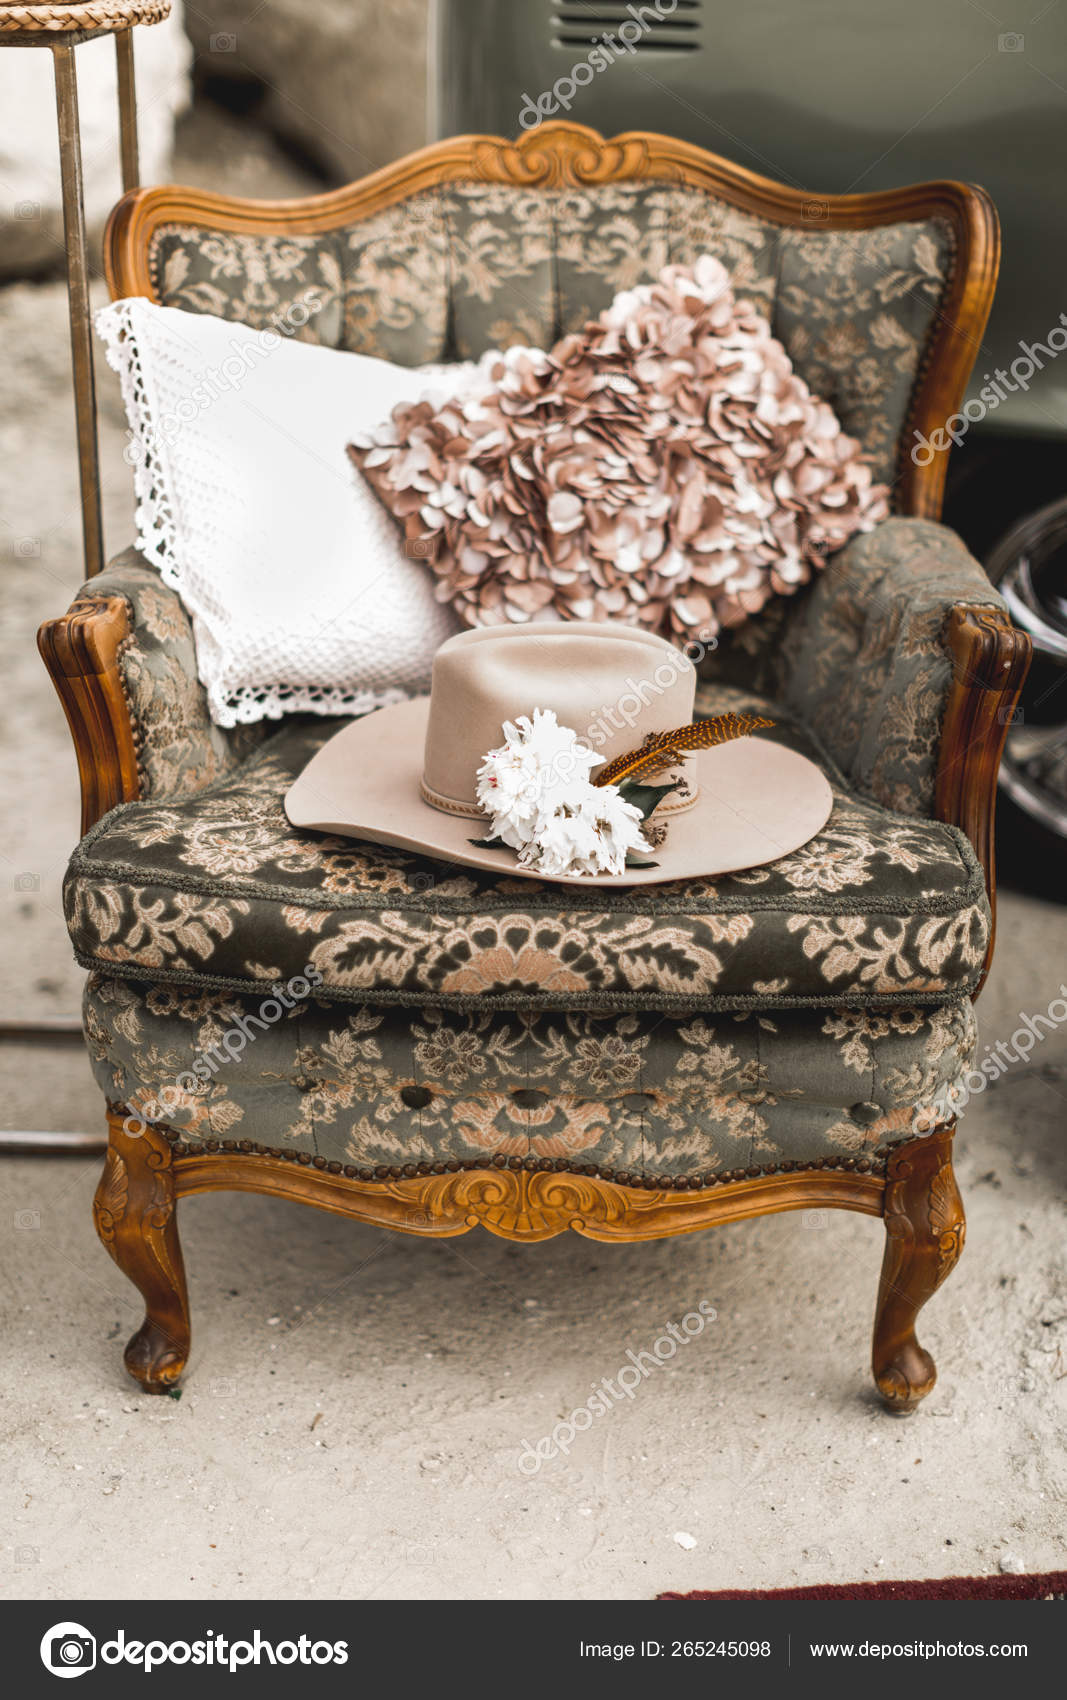 Stylish Light Brown Hat Decorated With White Flowers And Feather Lying On Vintage Armchair With Boho Pillows Decorations In Rustic Style Outdoors Desert Canyon Stock Photo C Sofiiashunkina Gmail Com 265245098